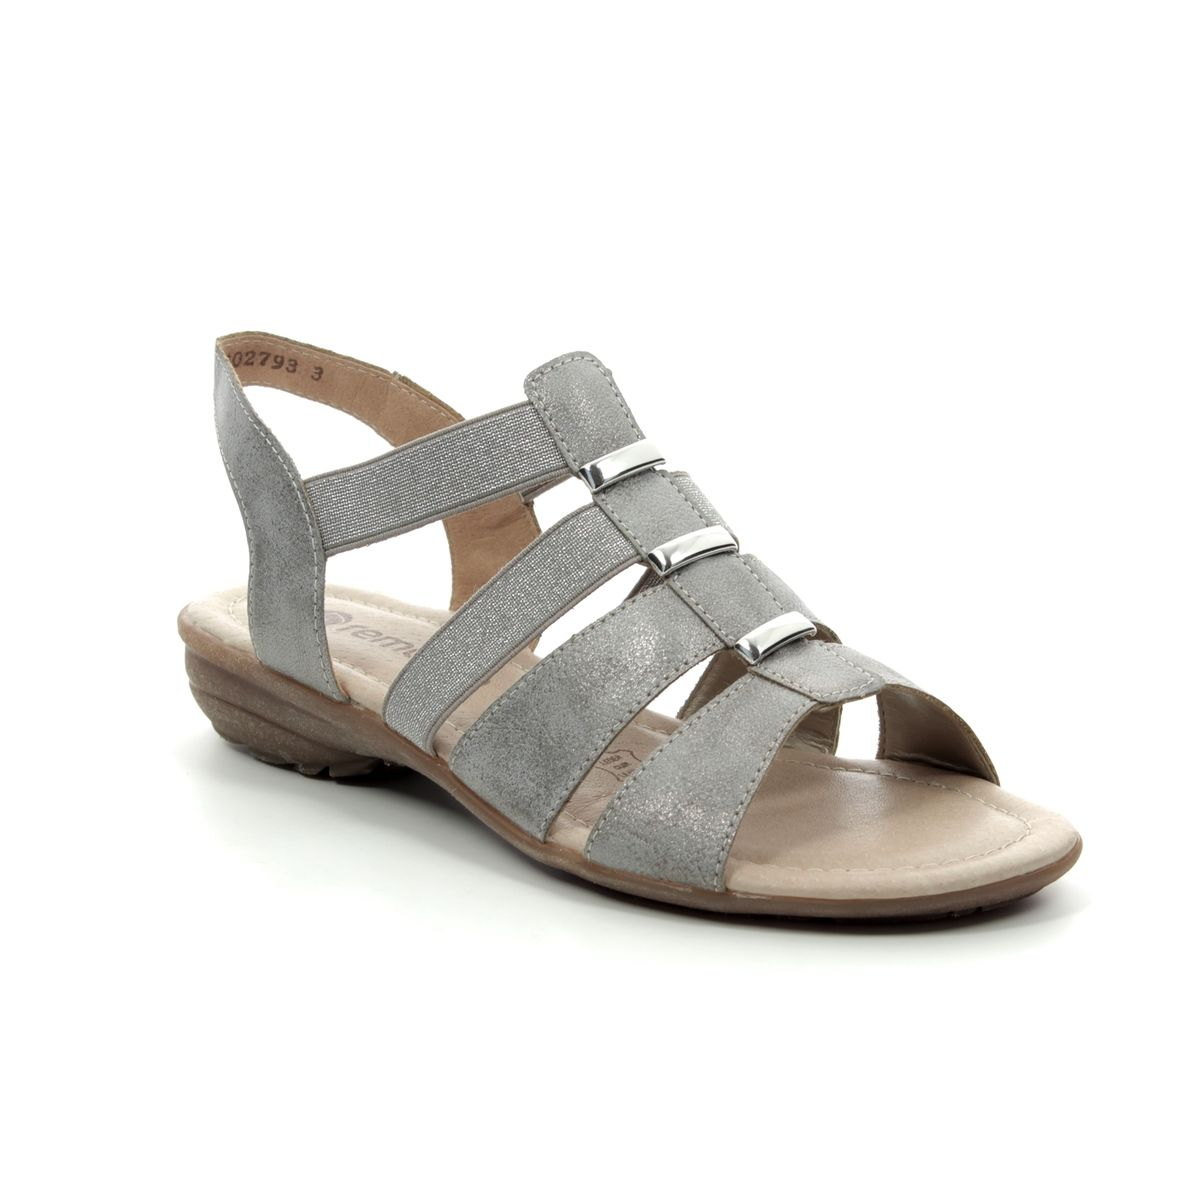 0aee08cfd58 Remonte Sandals - Light Grey - R3644-90 ODINE